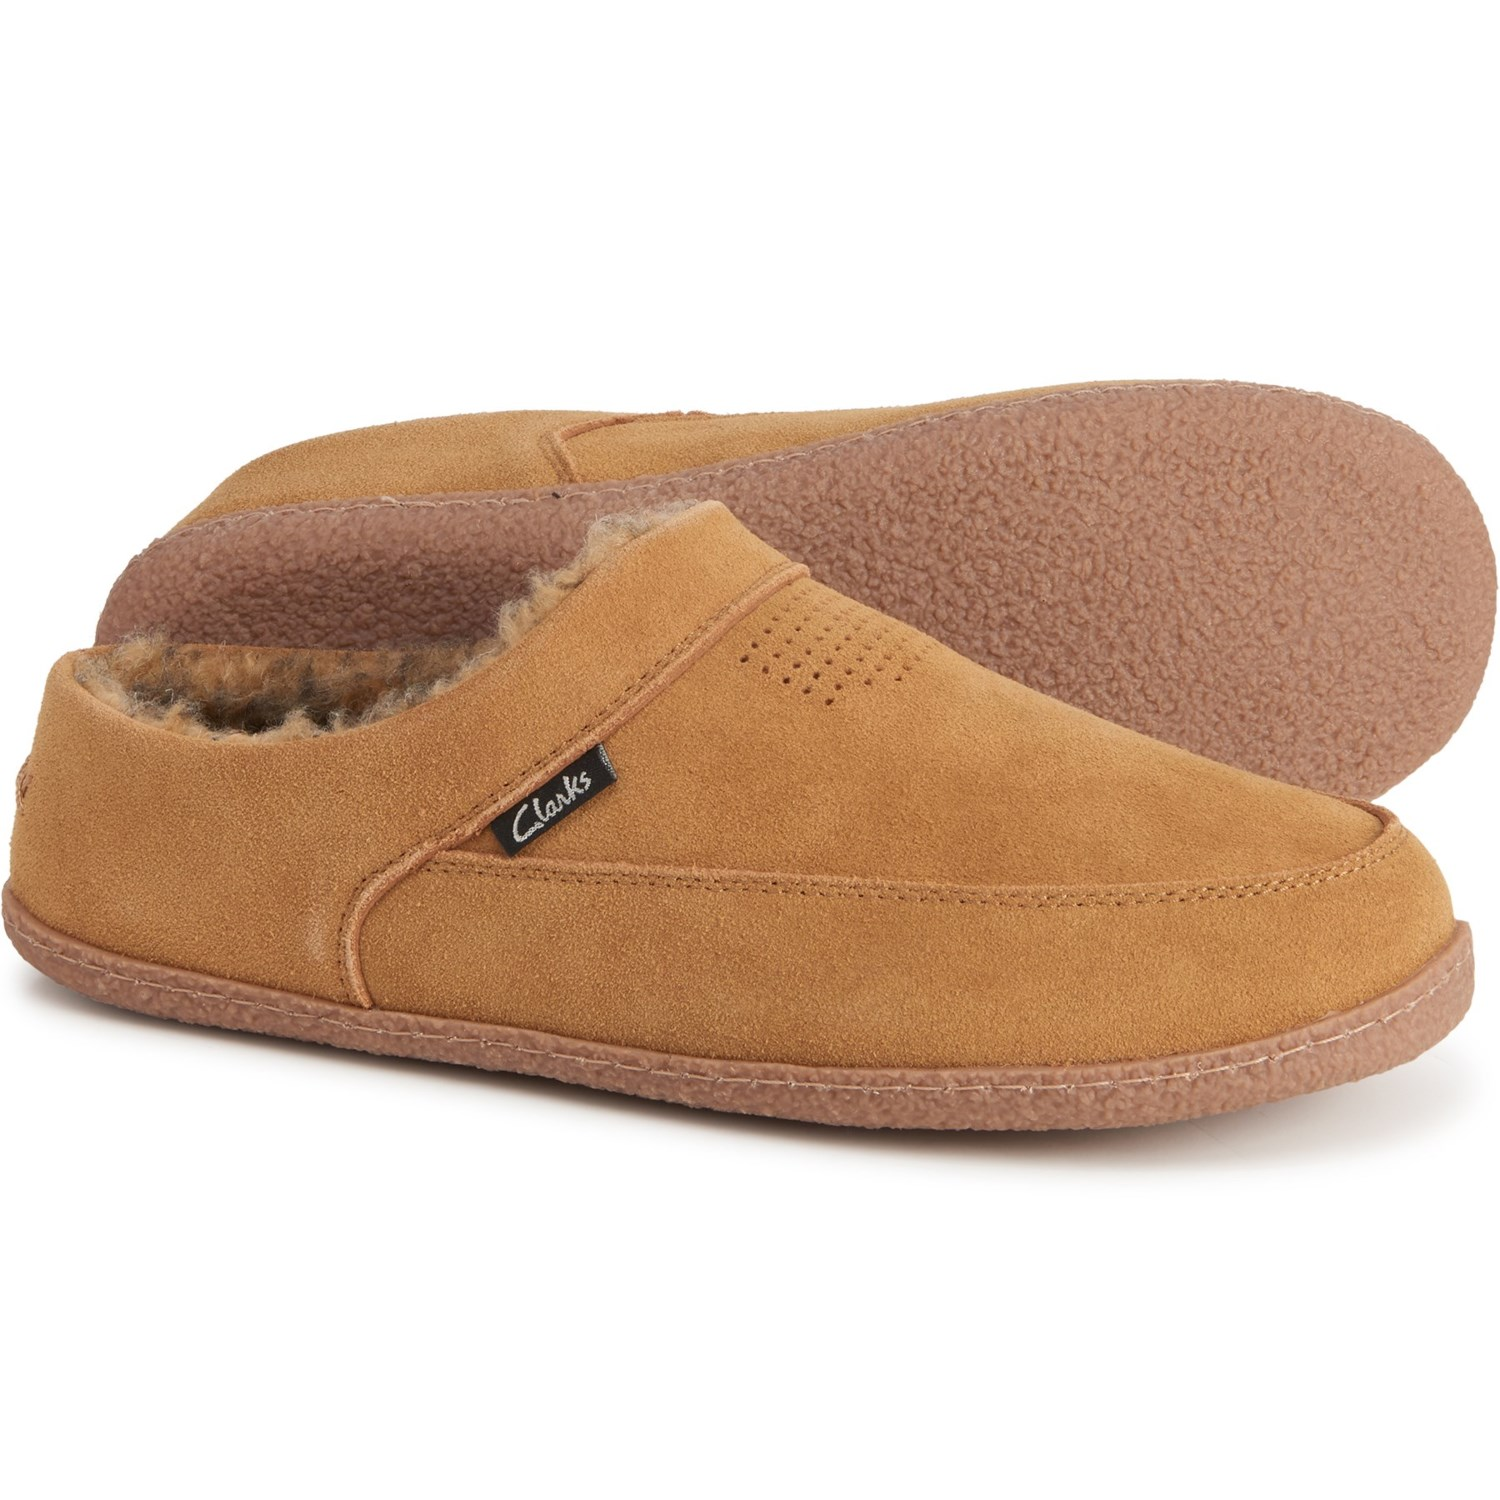 Clarks Perforated Suede Scuff Slippers